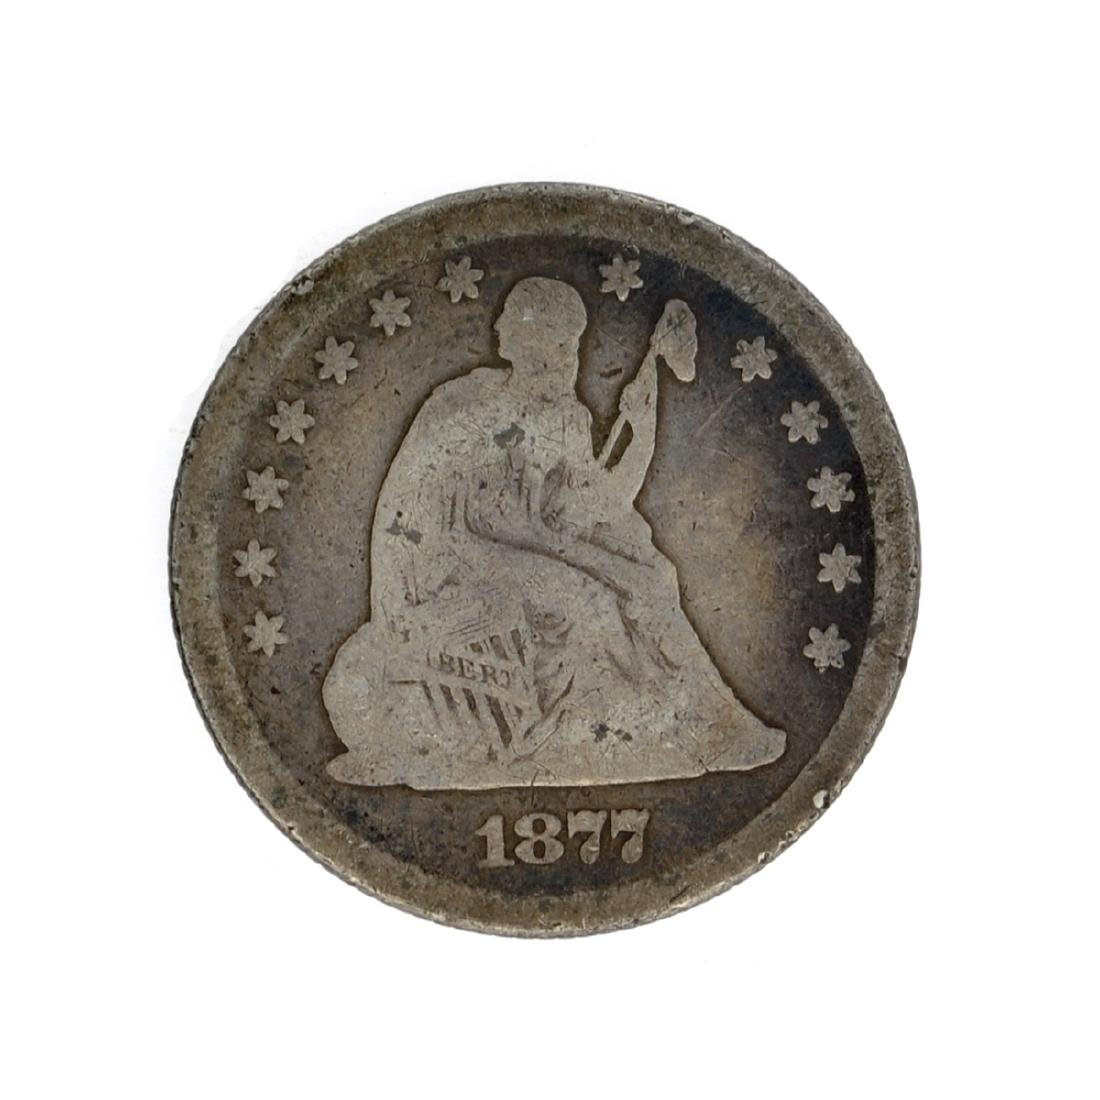 1877 Liberty Seated Quarter Dollar Coin